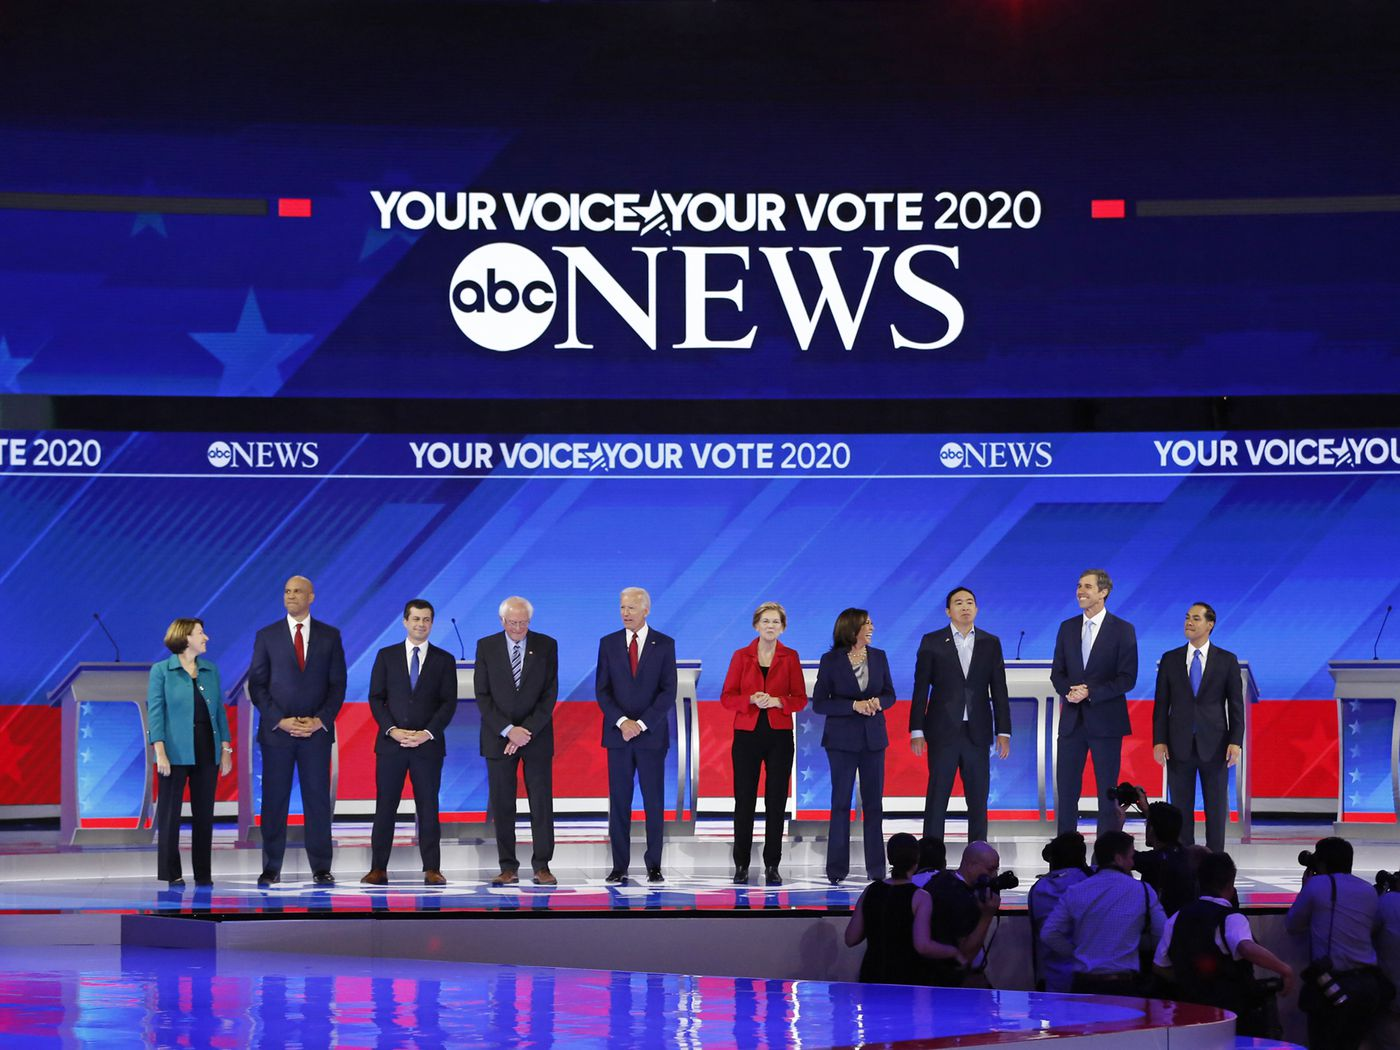 Heres where every 2020 candidate stands on guns   Vox 1400x1050